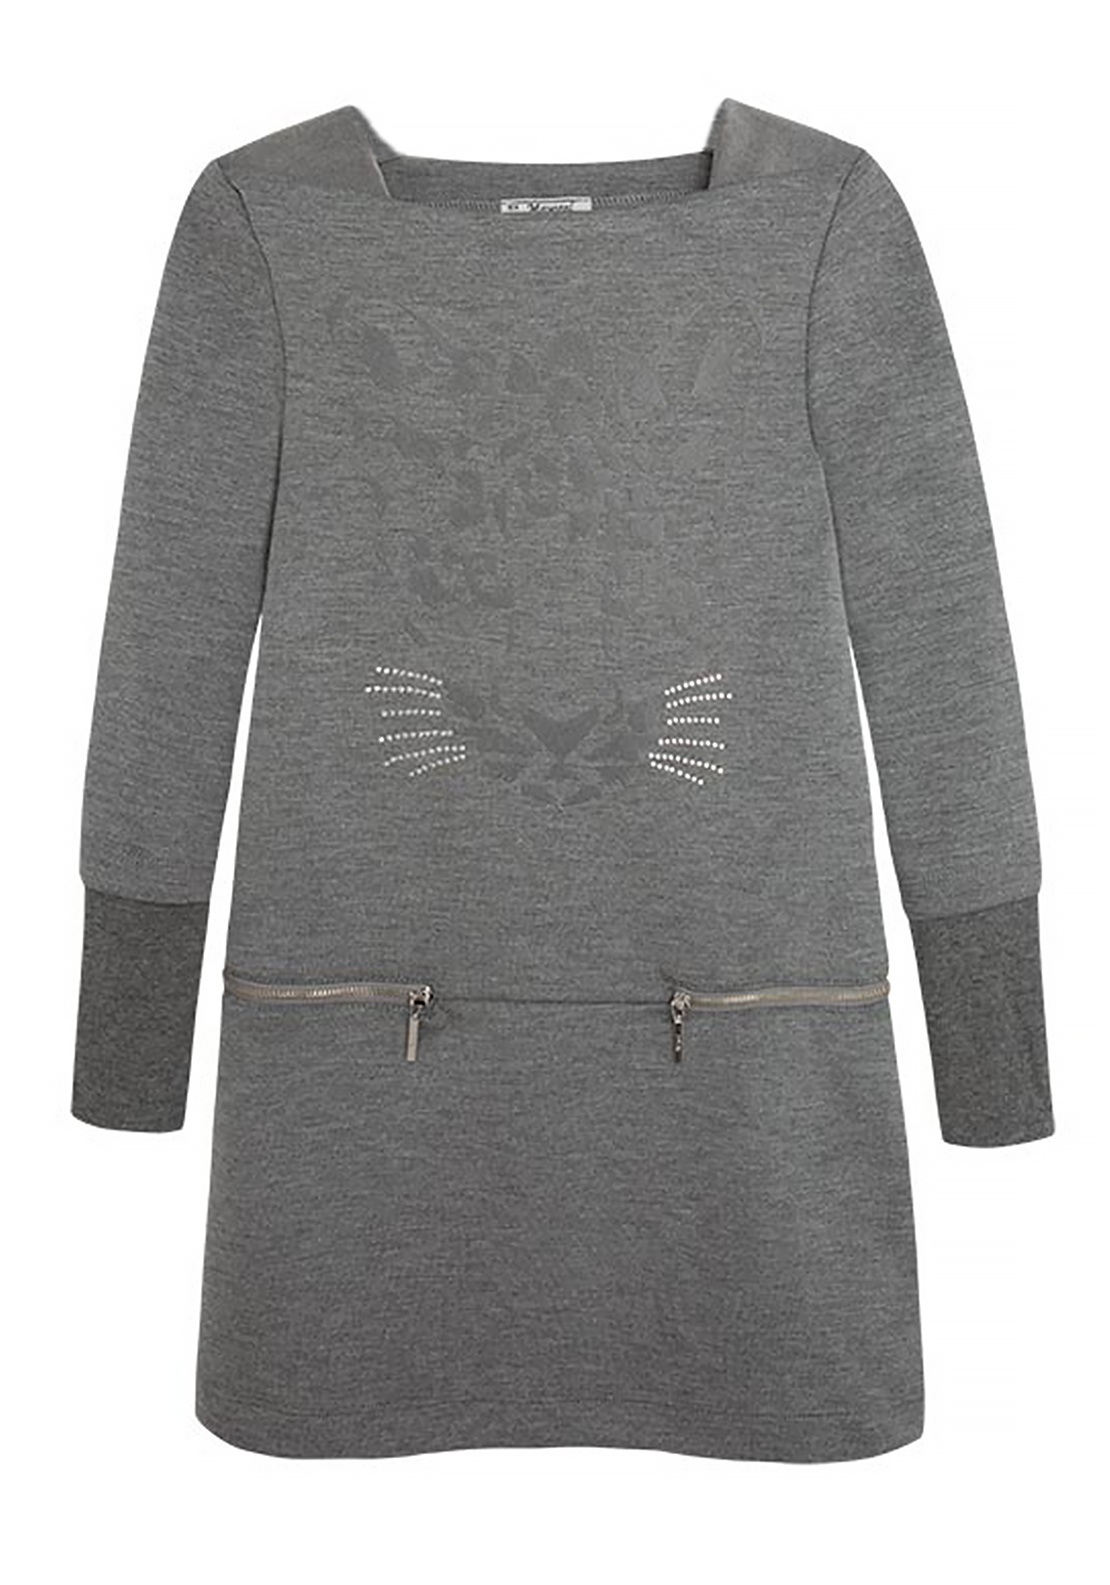 Mayoral Girls Tiger Embellished Jersey Dress, Grey